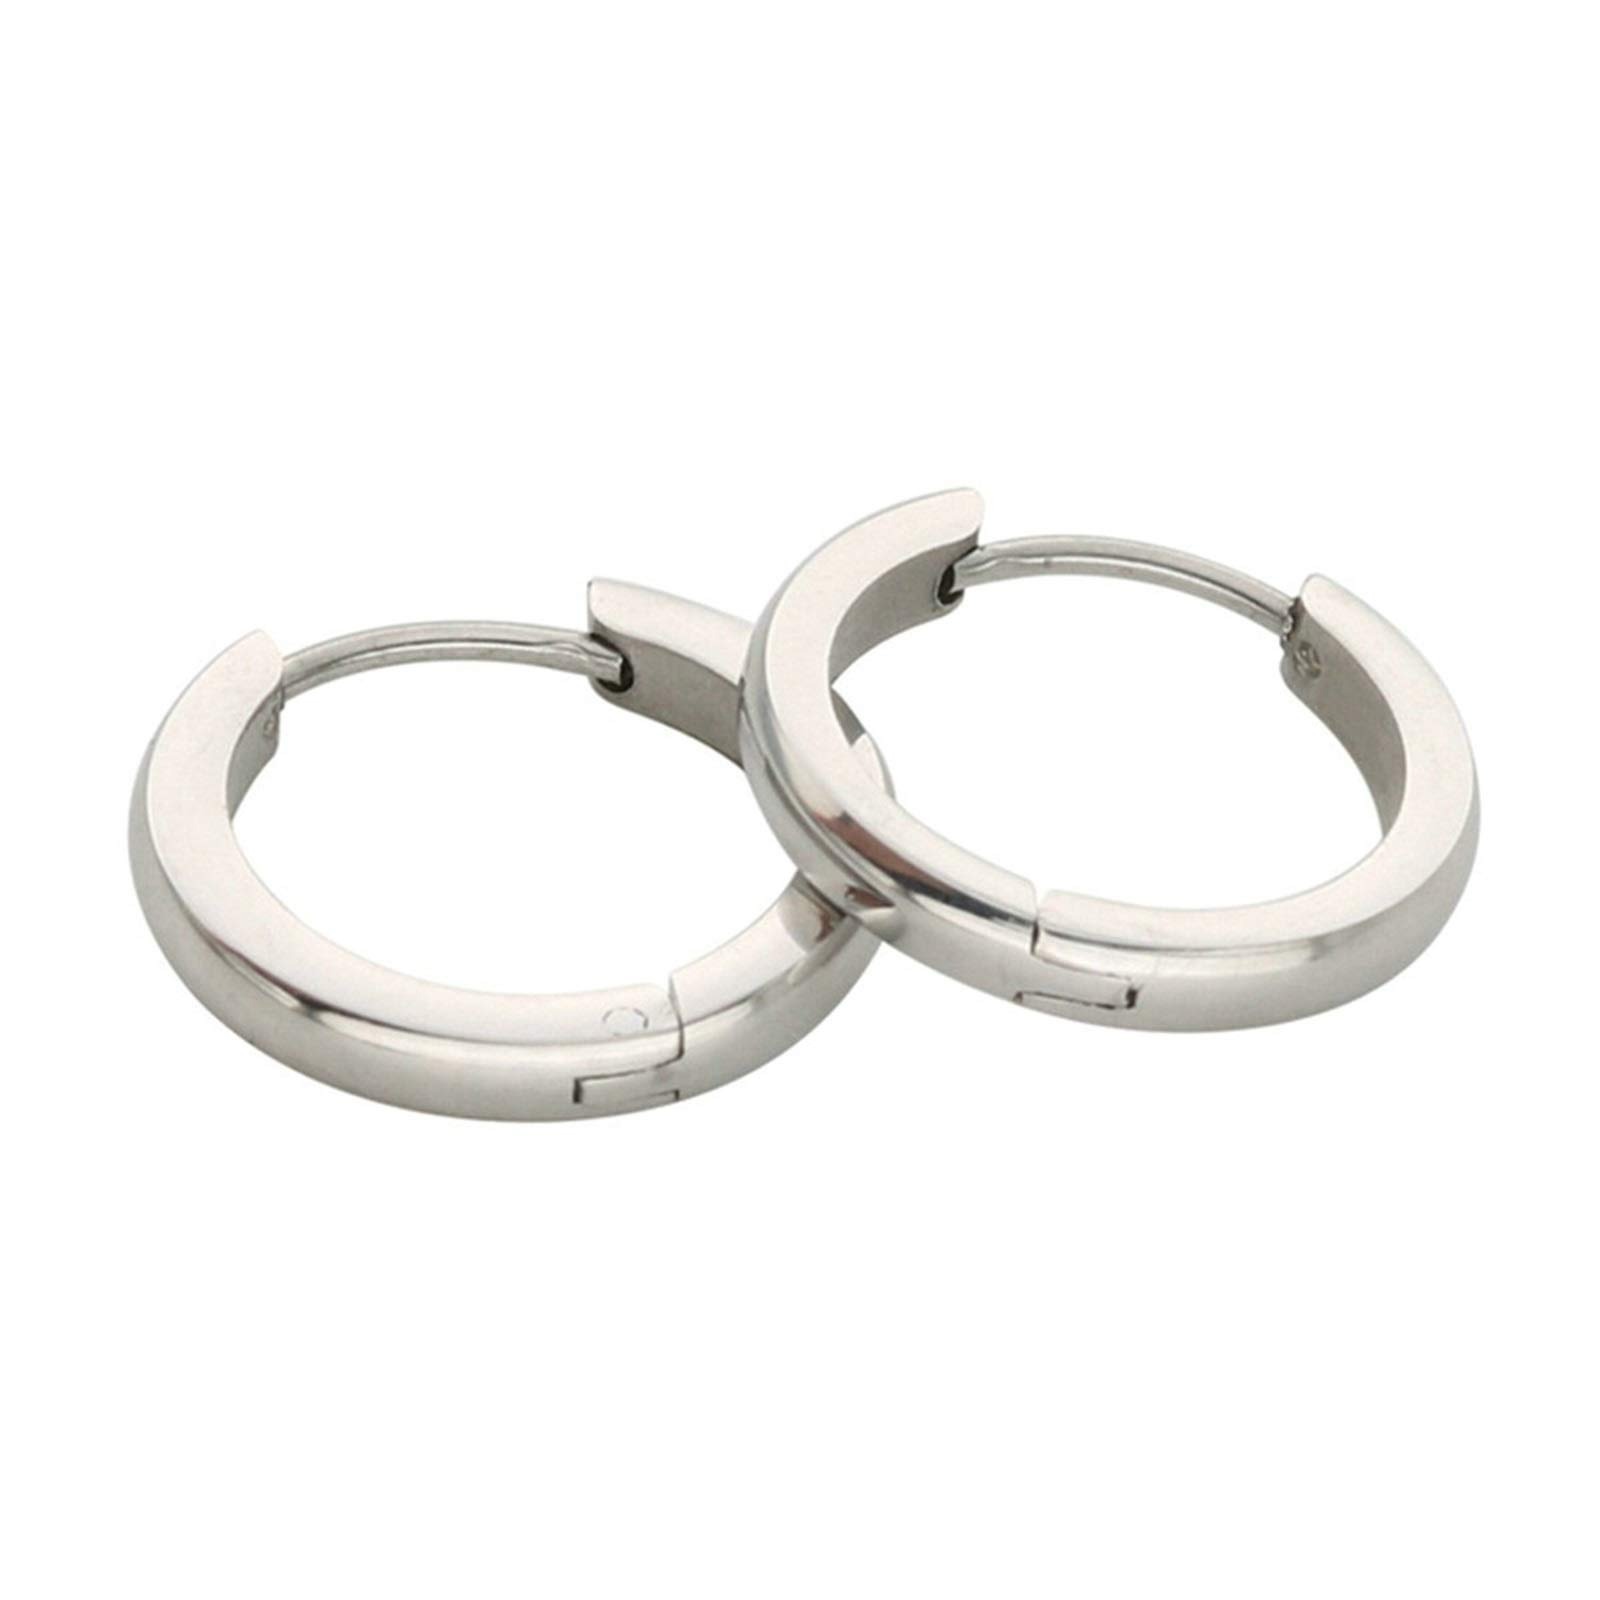 Aokarry Surfical Steel Huggie Earrings 2PCS 316L Wide 2MM Small For Cartilage 7MM Silver